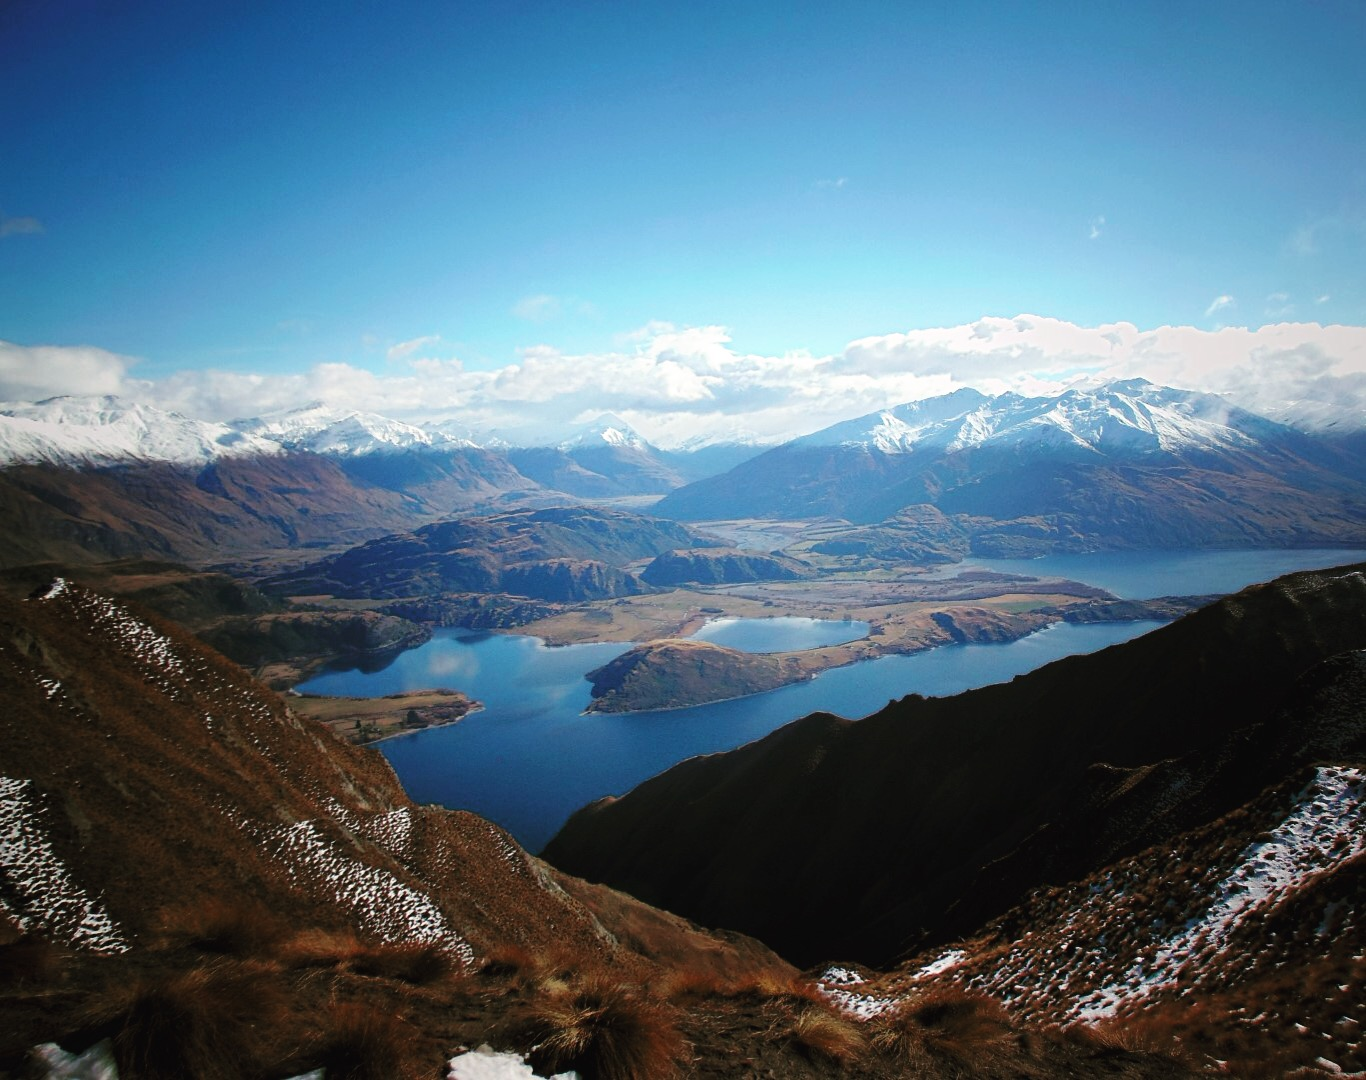 New Zealand's spectacular South Island